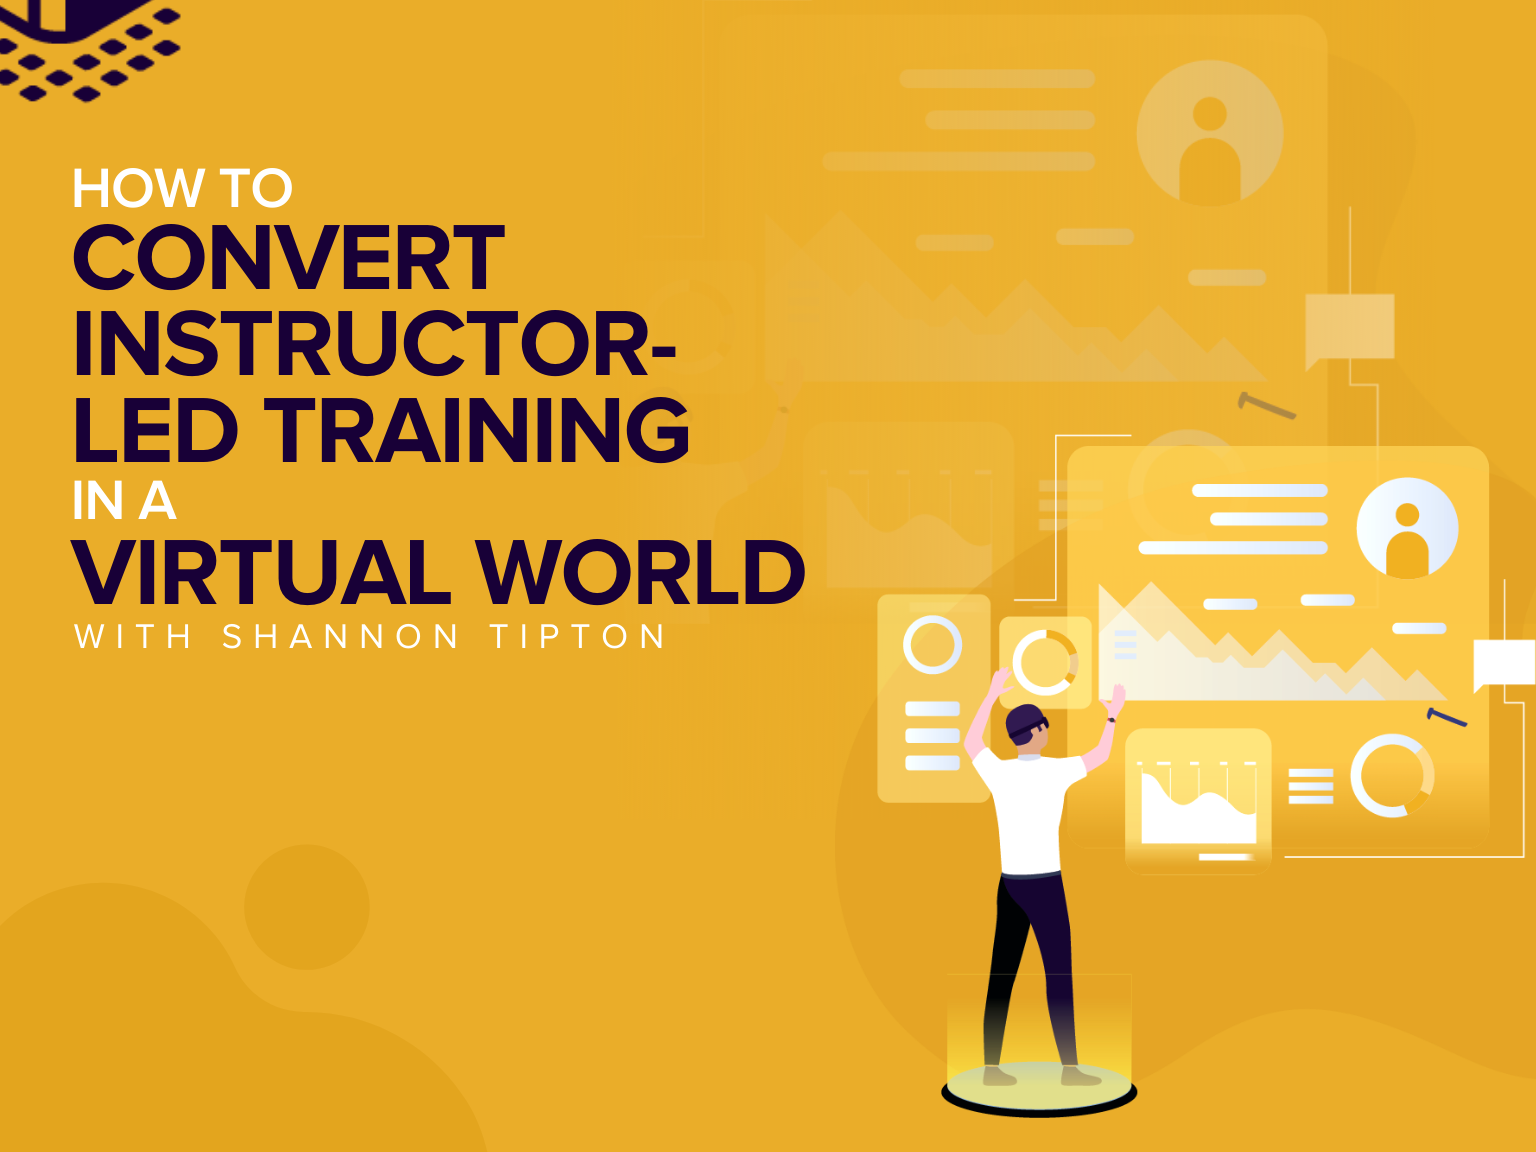 How to Convert Instructor Lead Training in a Virtual World with Shannon Tipton